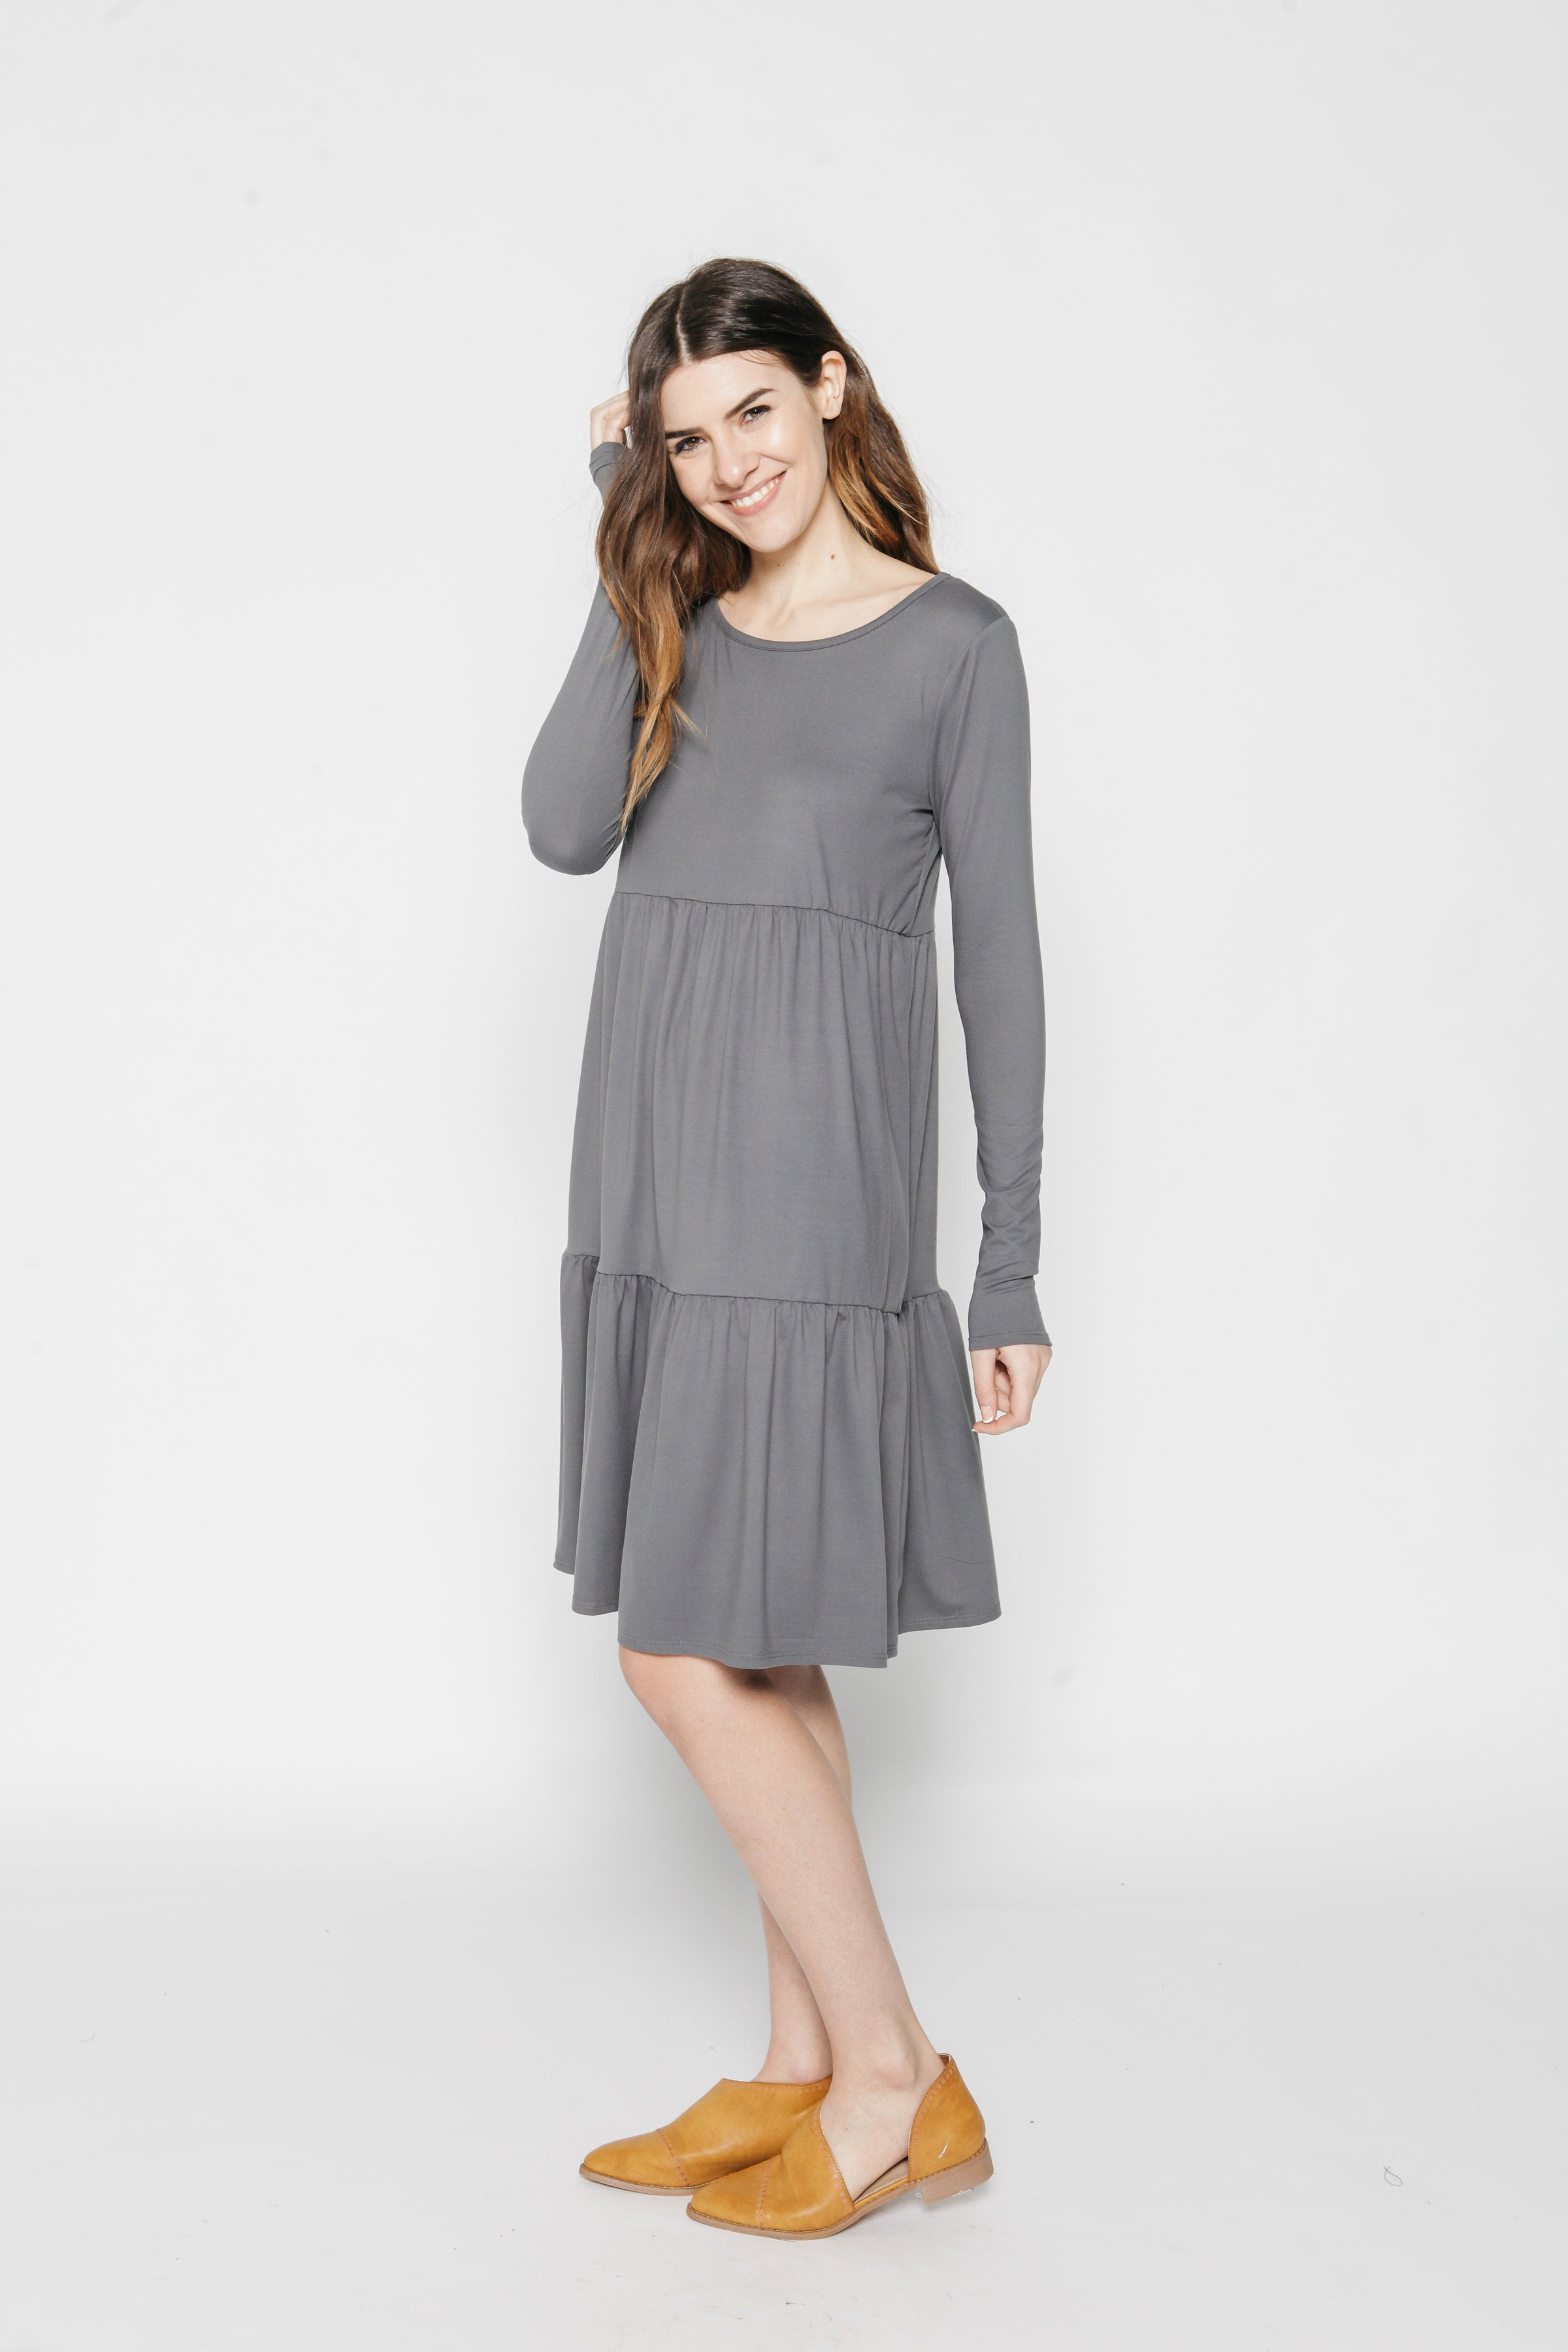 Ava Tiered Dress - Charcoal